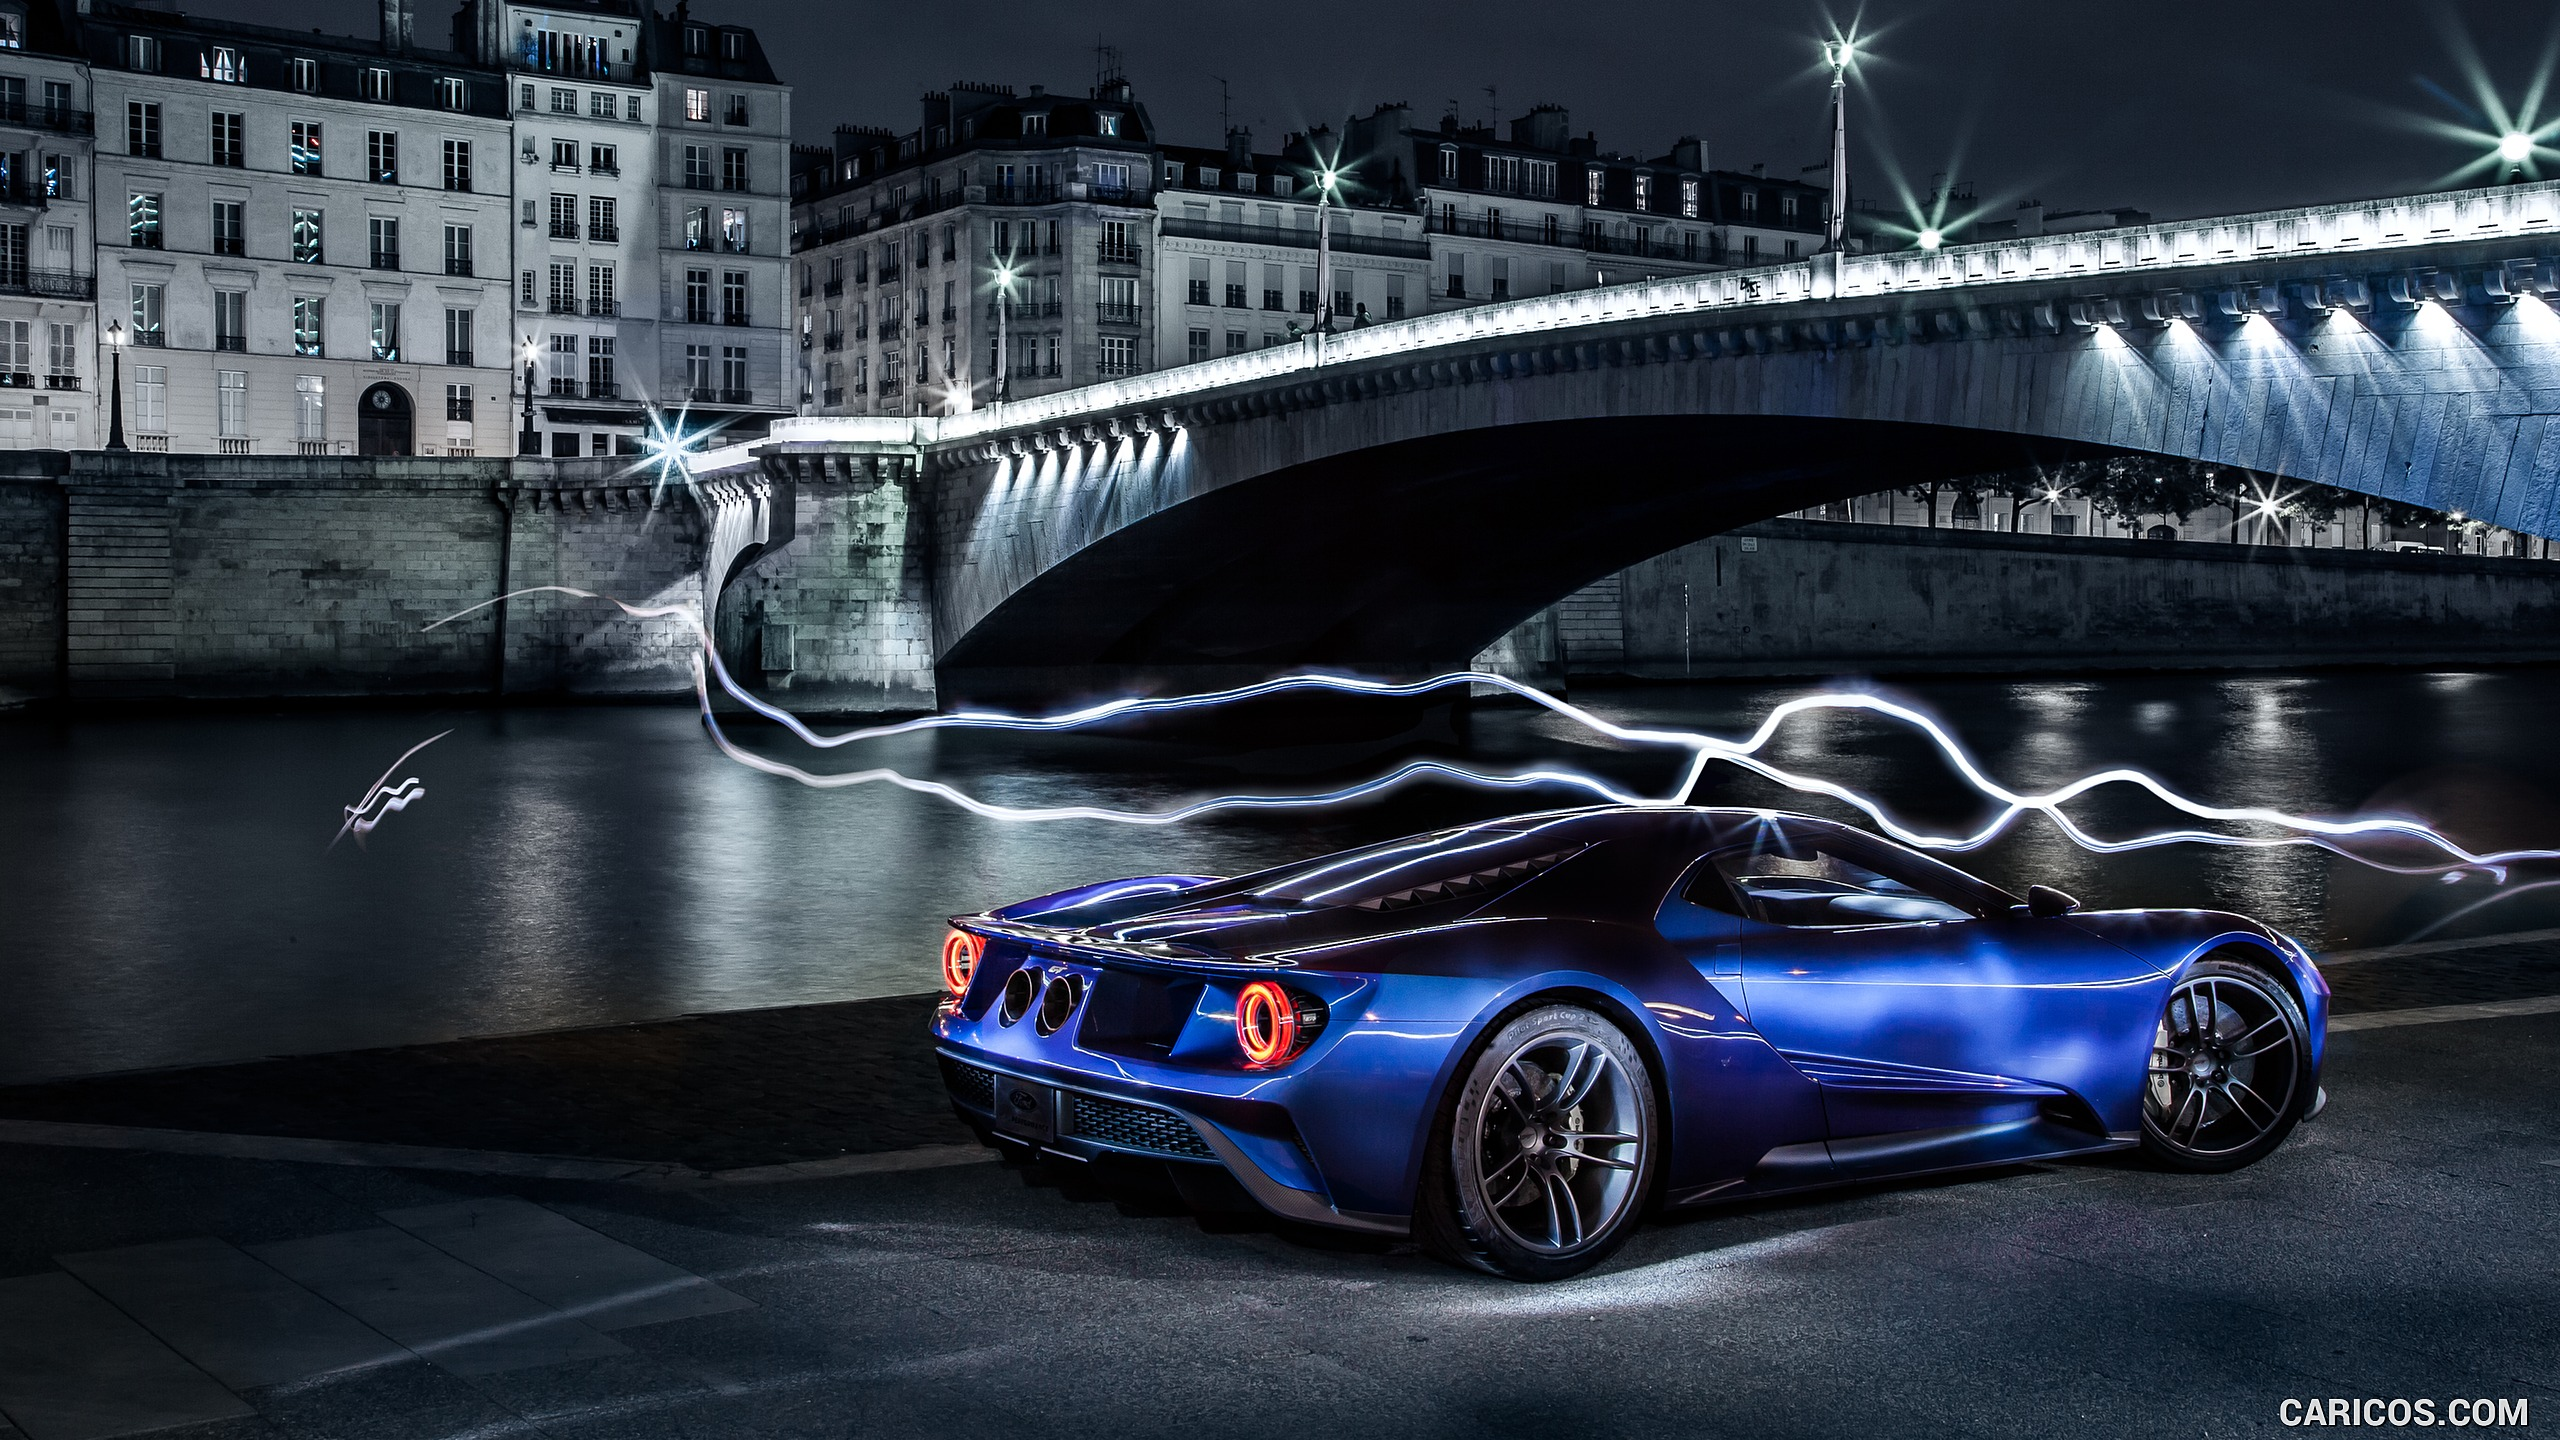 Ford Gt Wallpaper Image Group 32 2560x1440